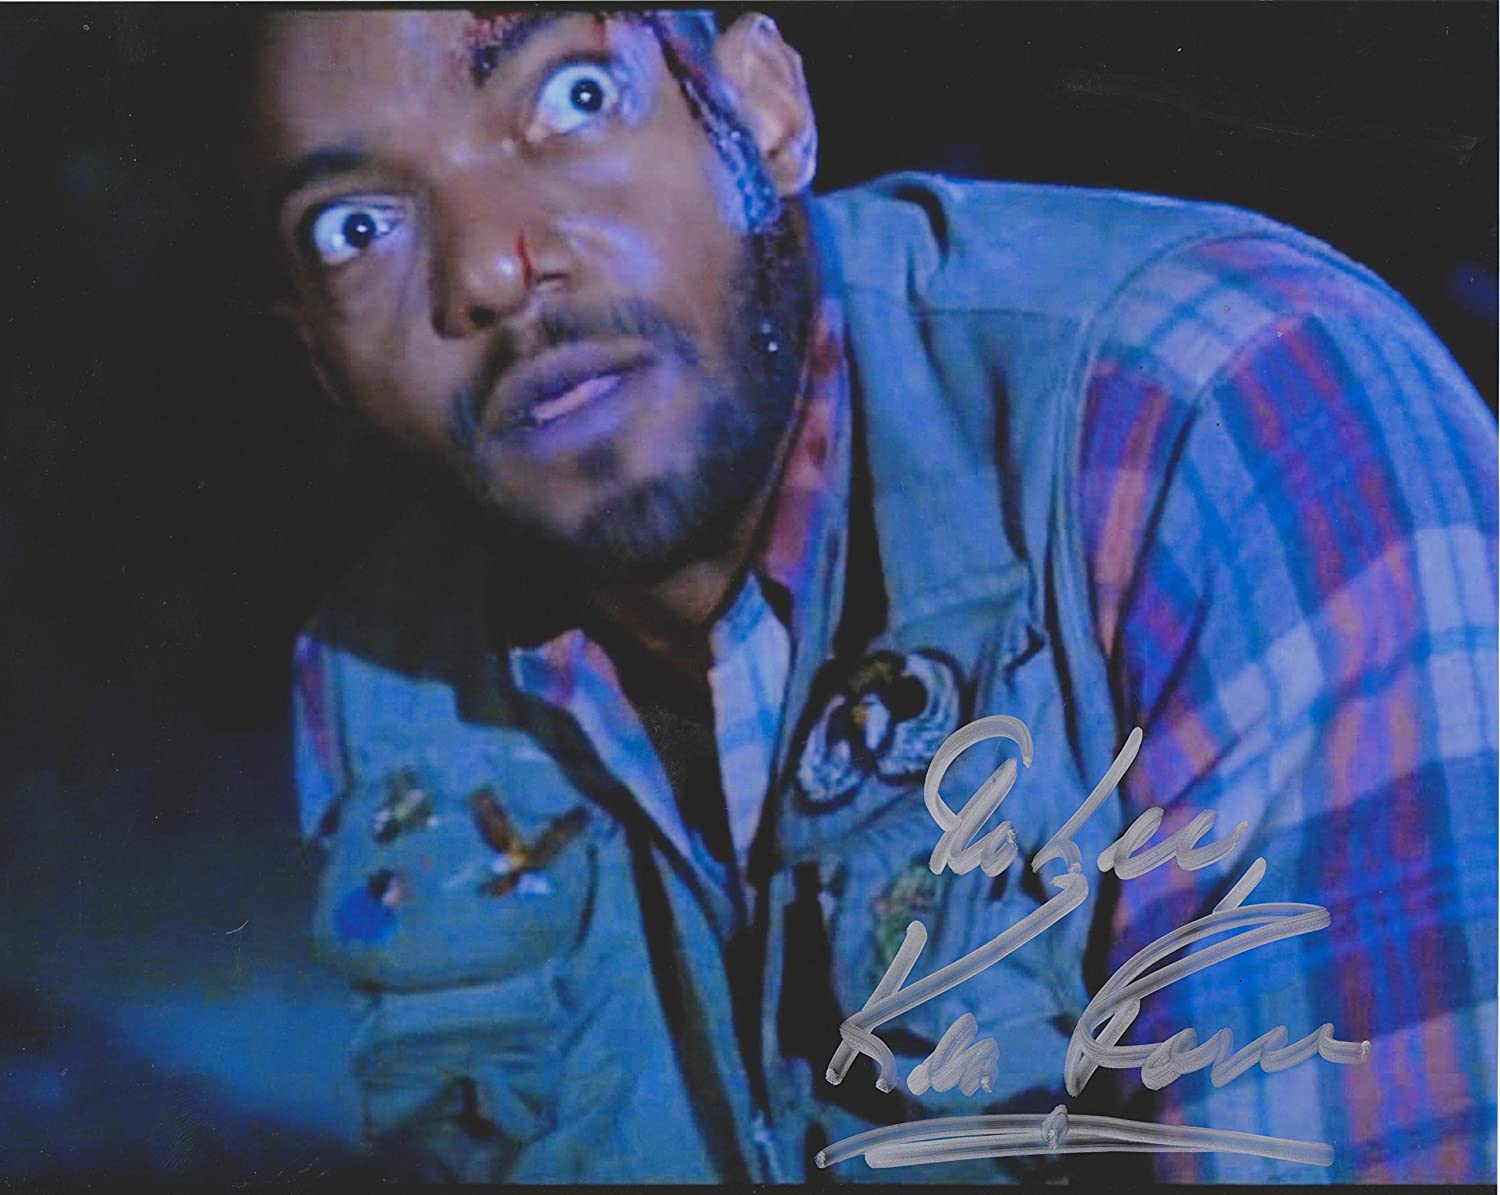 Ken Foree Dawn Of The Dead 3 Original Autographed 8x10 Photo At Amazon S Entertainment Collectibles Store Devils rejects ken foree / sid haig panty moving. dead 3 original autographed 8x10 photo